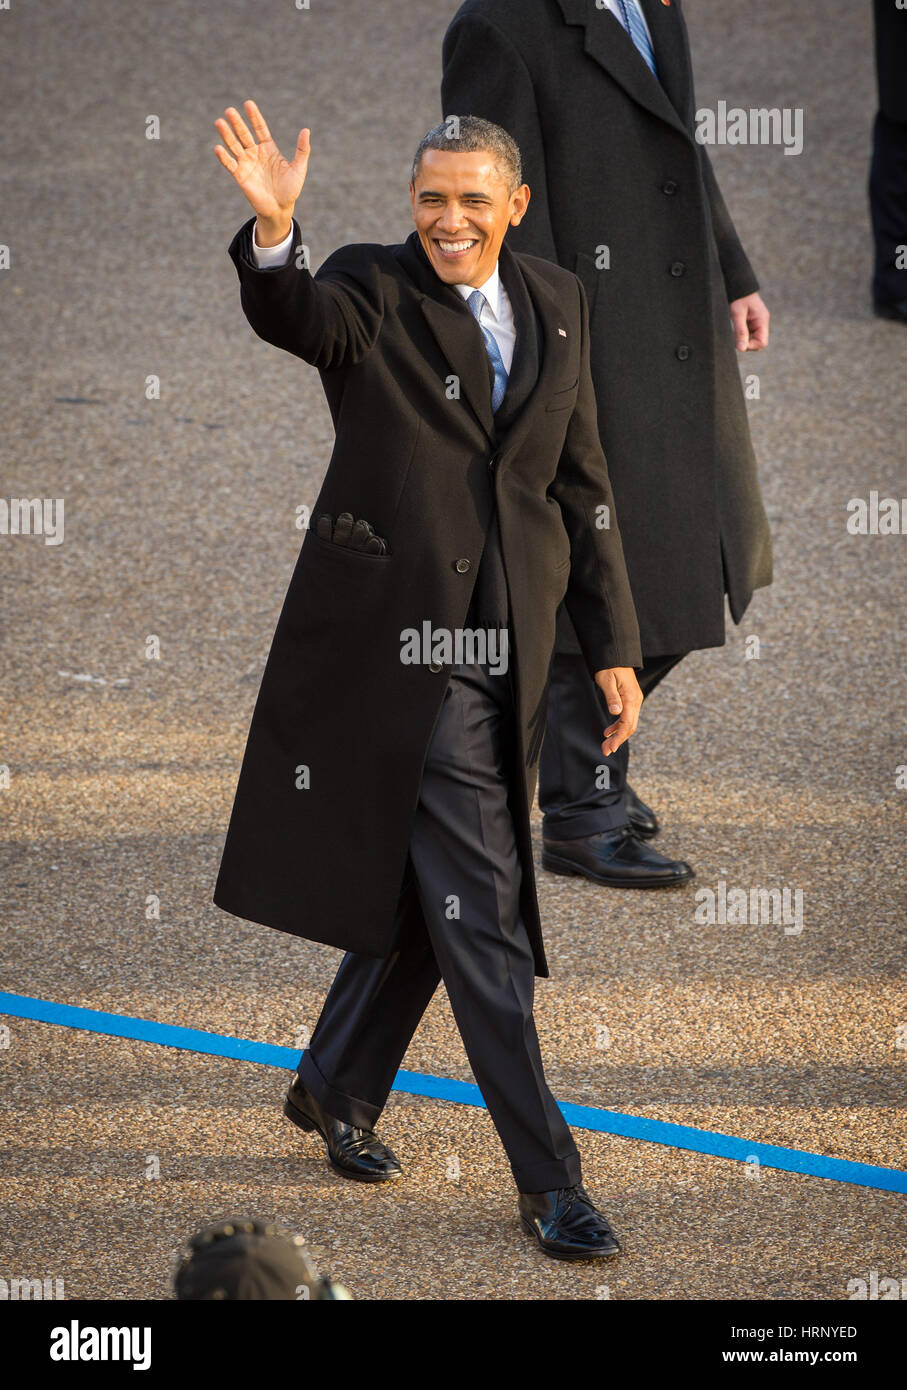 Barack Obama - Stock Image